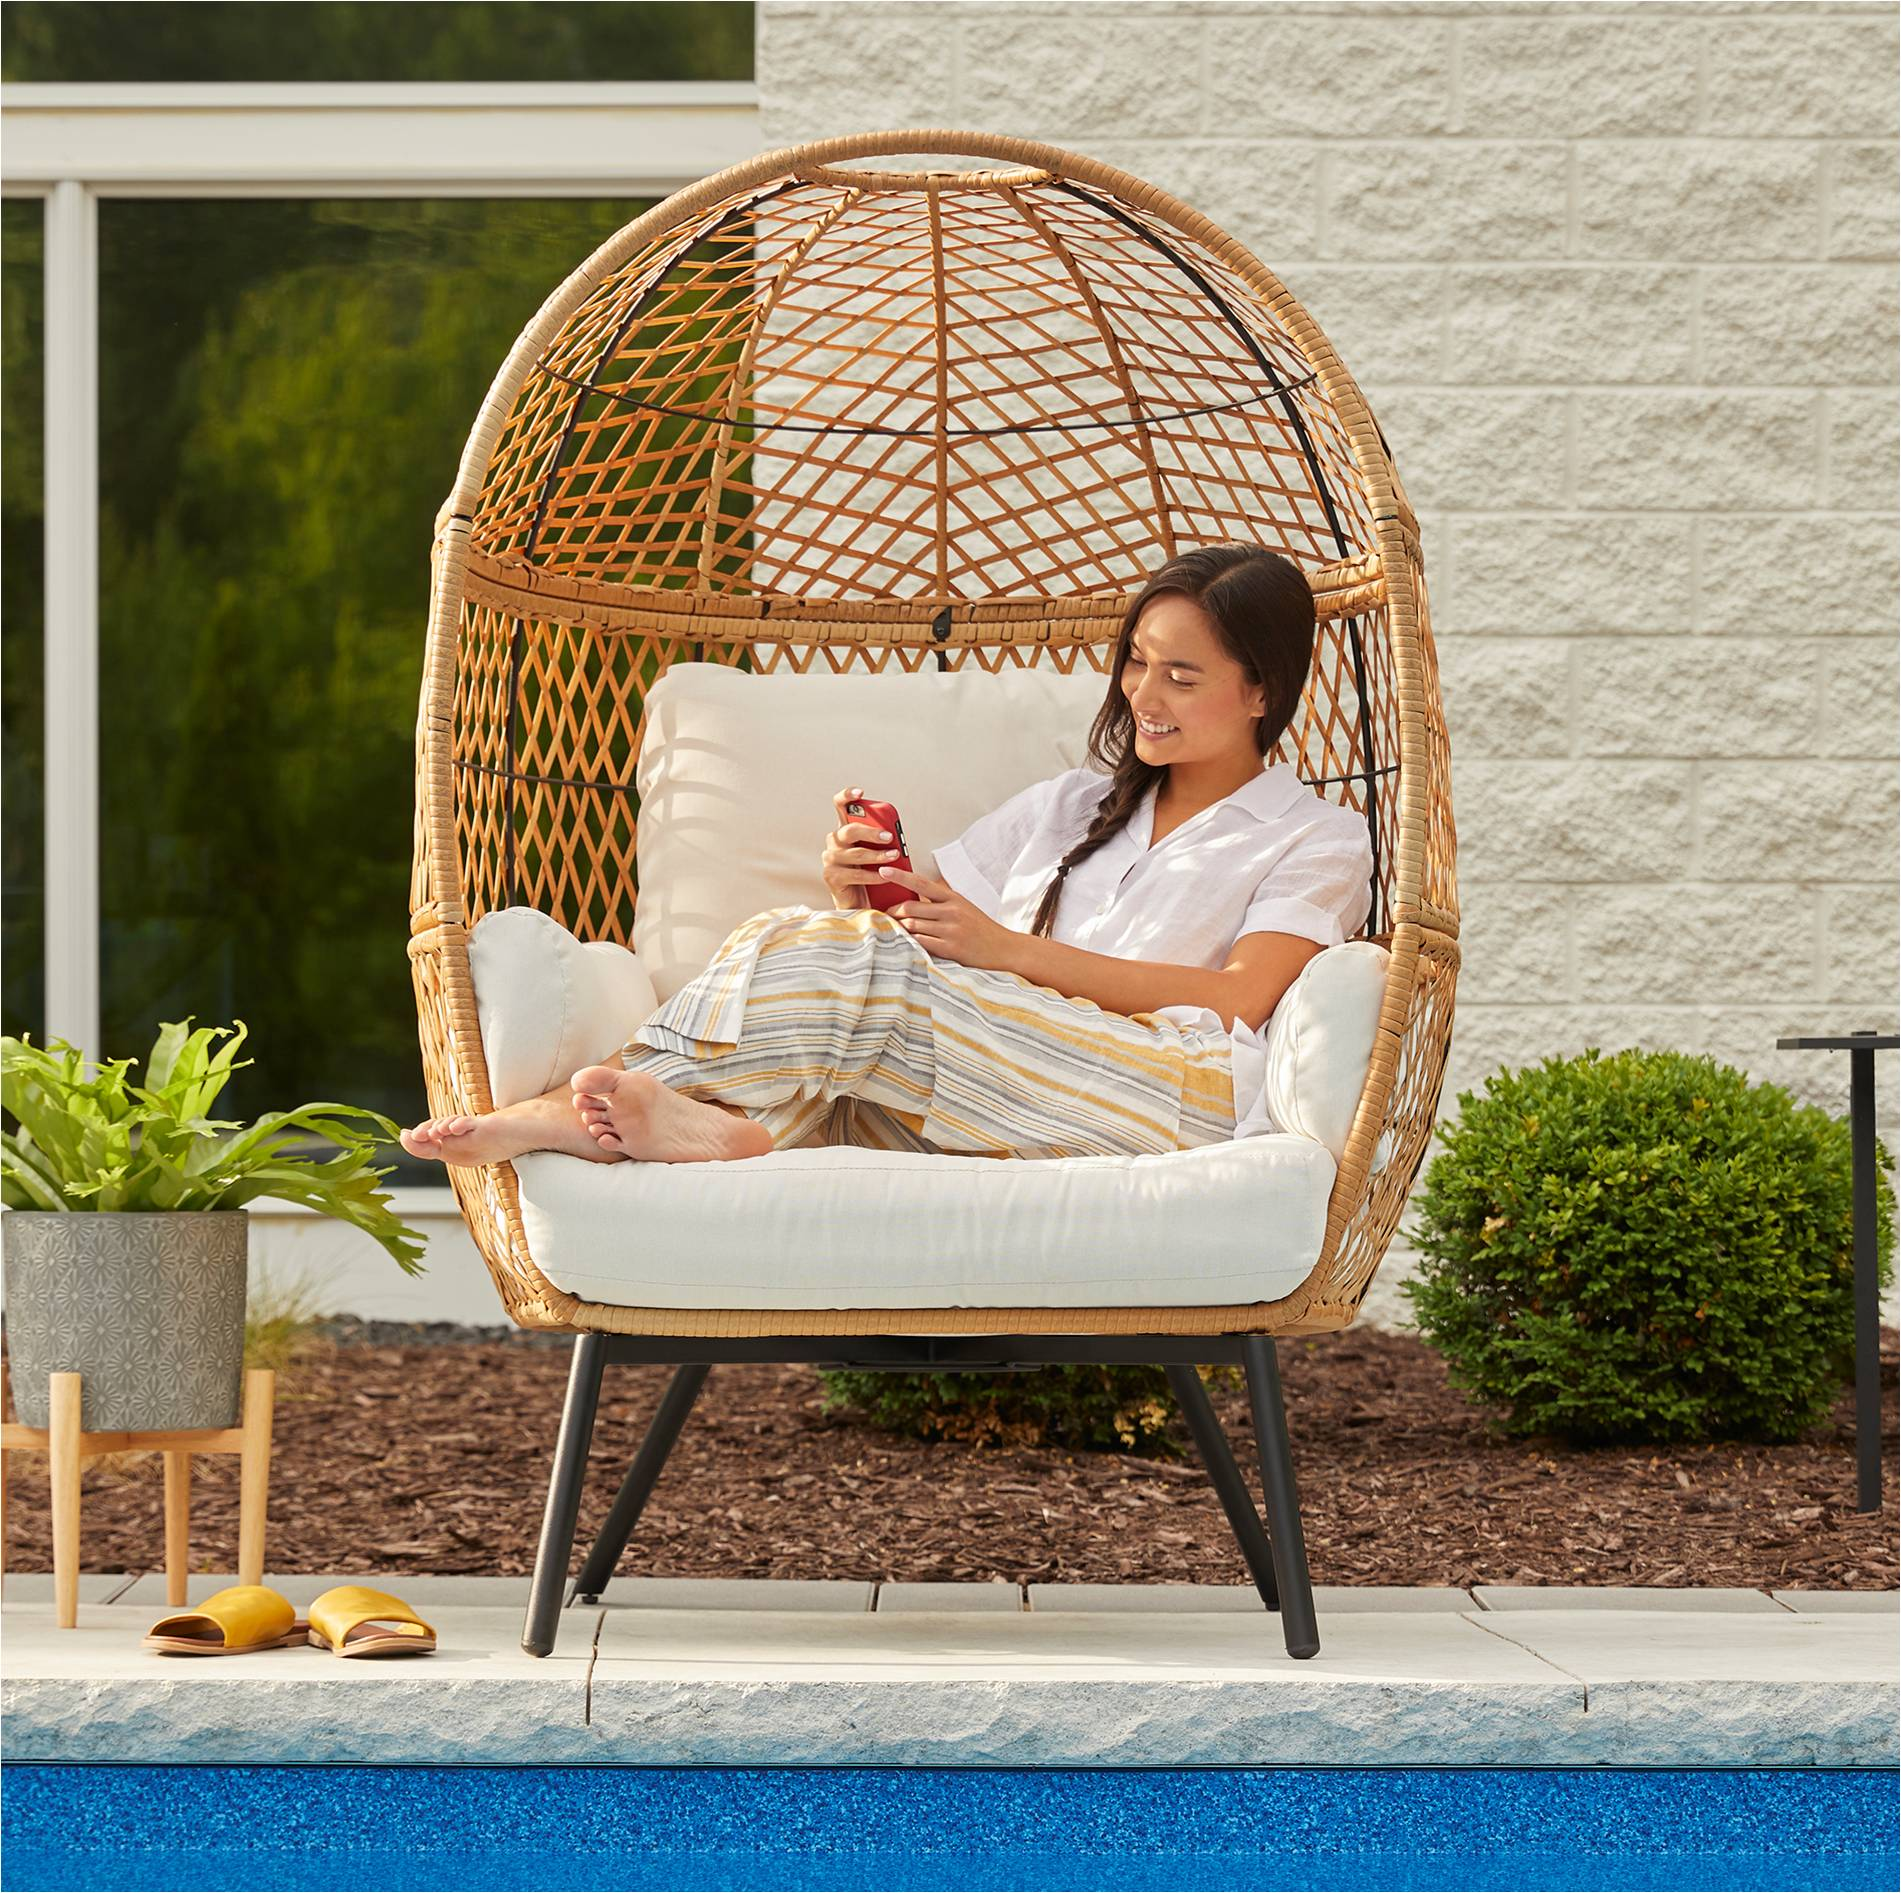 target egg chair wicker clearance sale